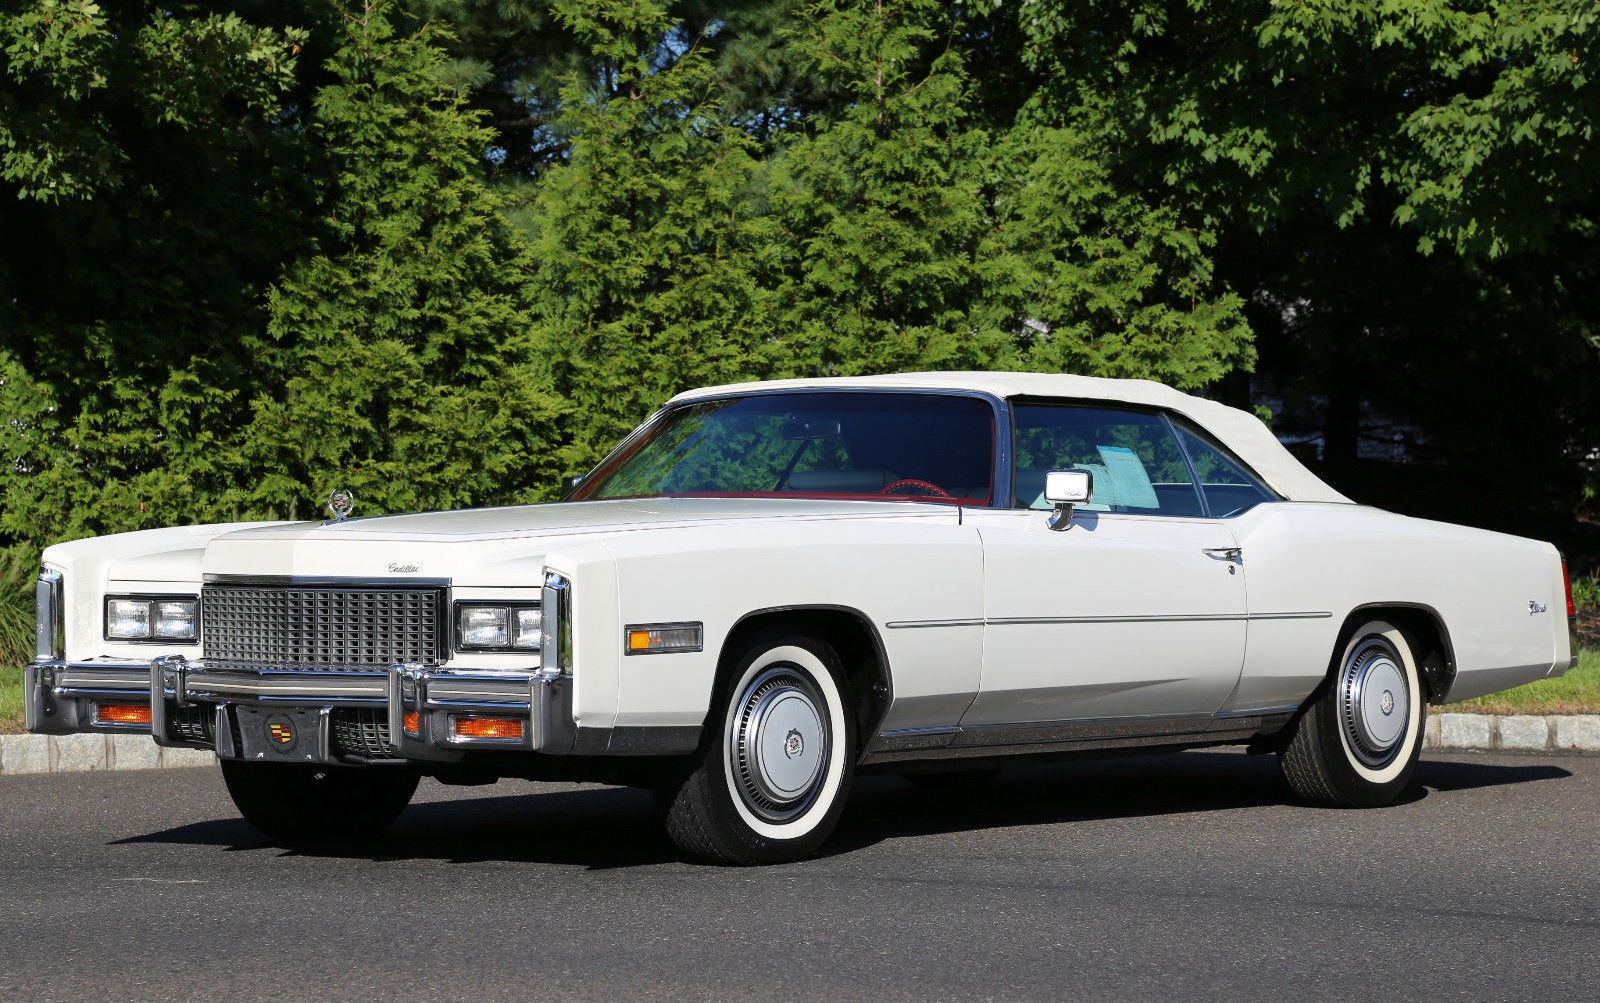 1976 cadillac eldorado with only 60 miles rh barnfinds com 1976 cadillac eldorado service manual 1975 Cadillac Eldorado